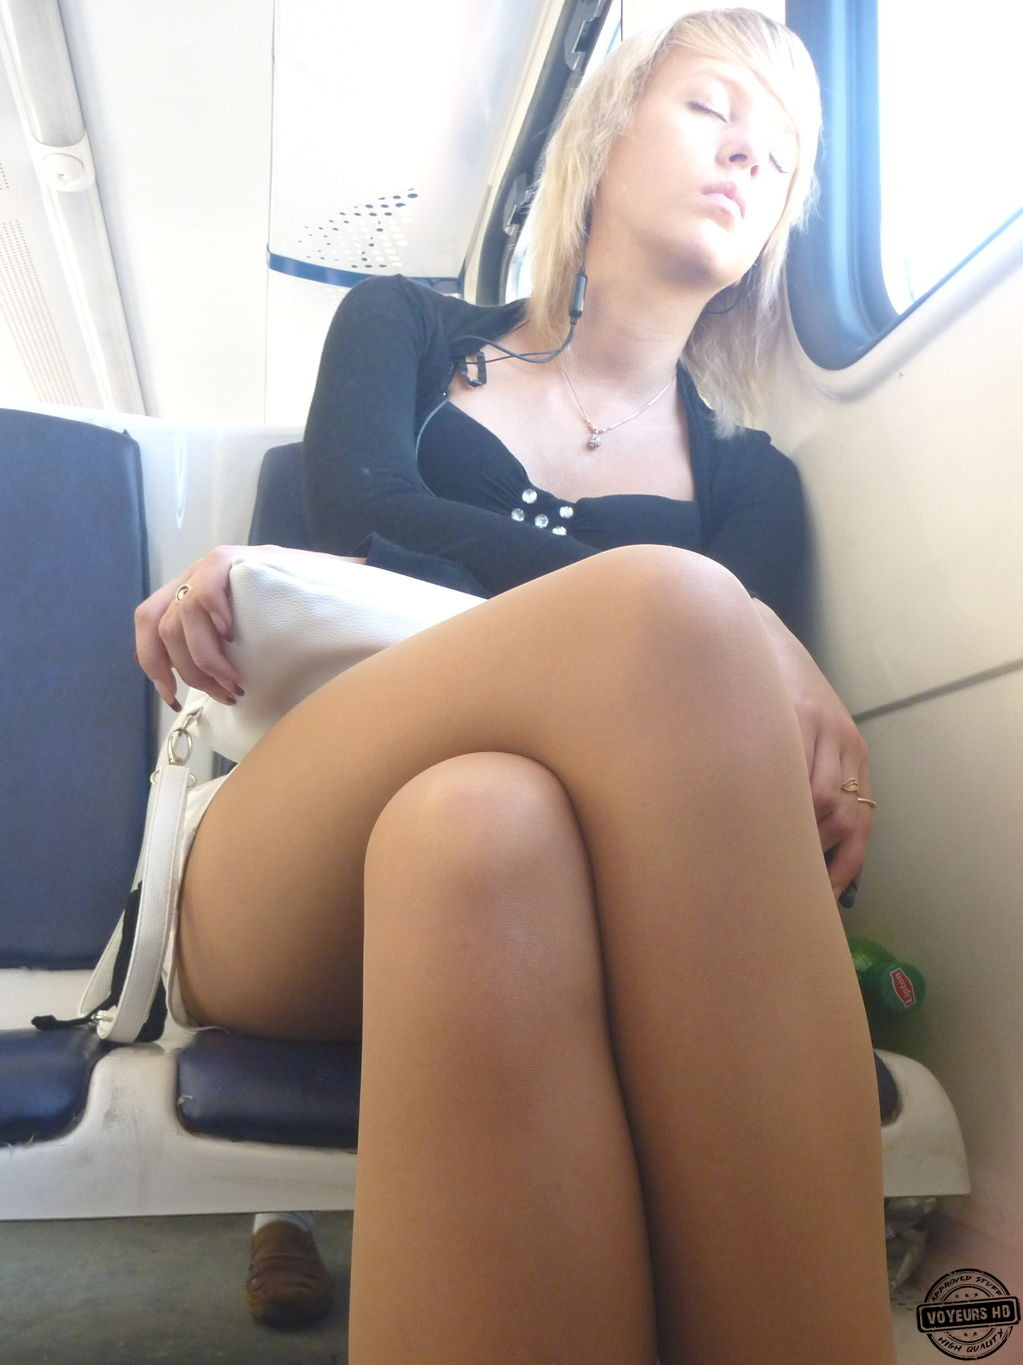 Candid sexy crossed legs 10 slow motion 10